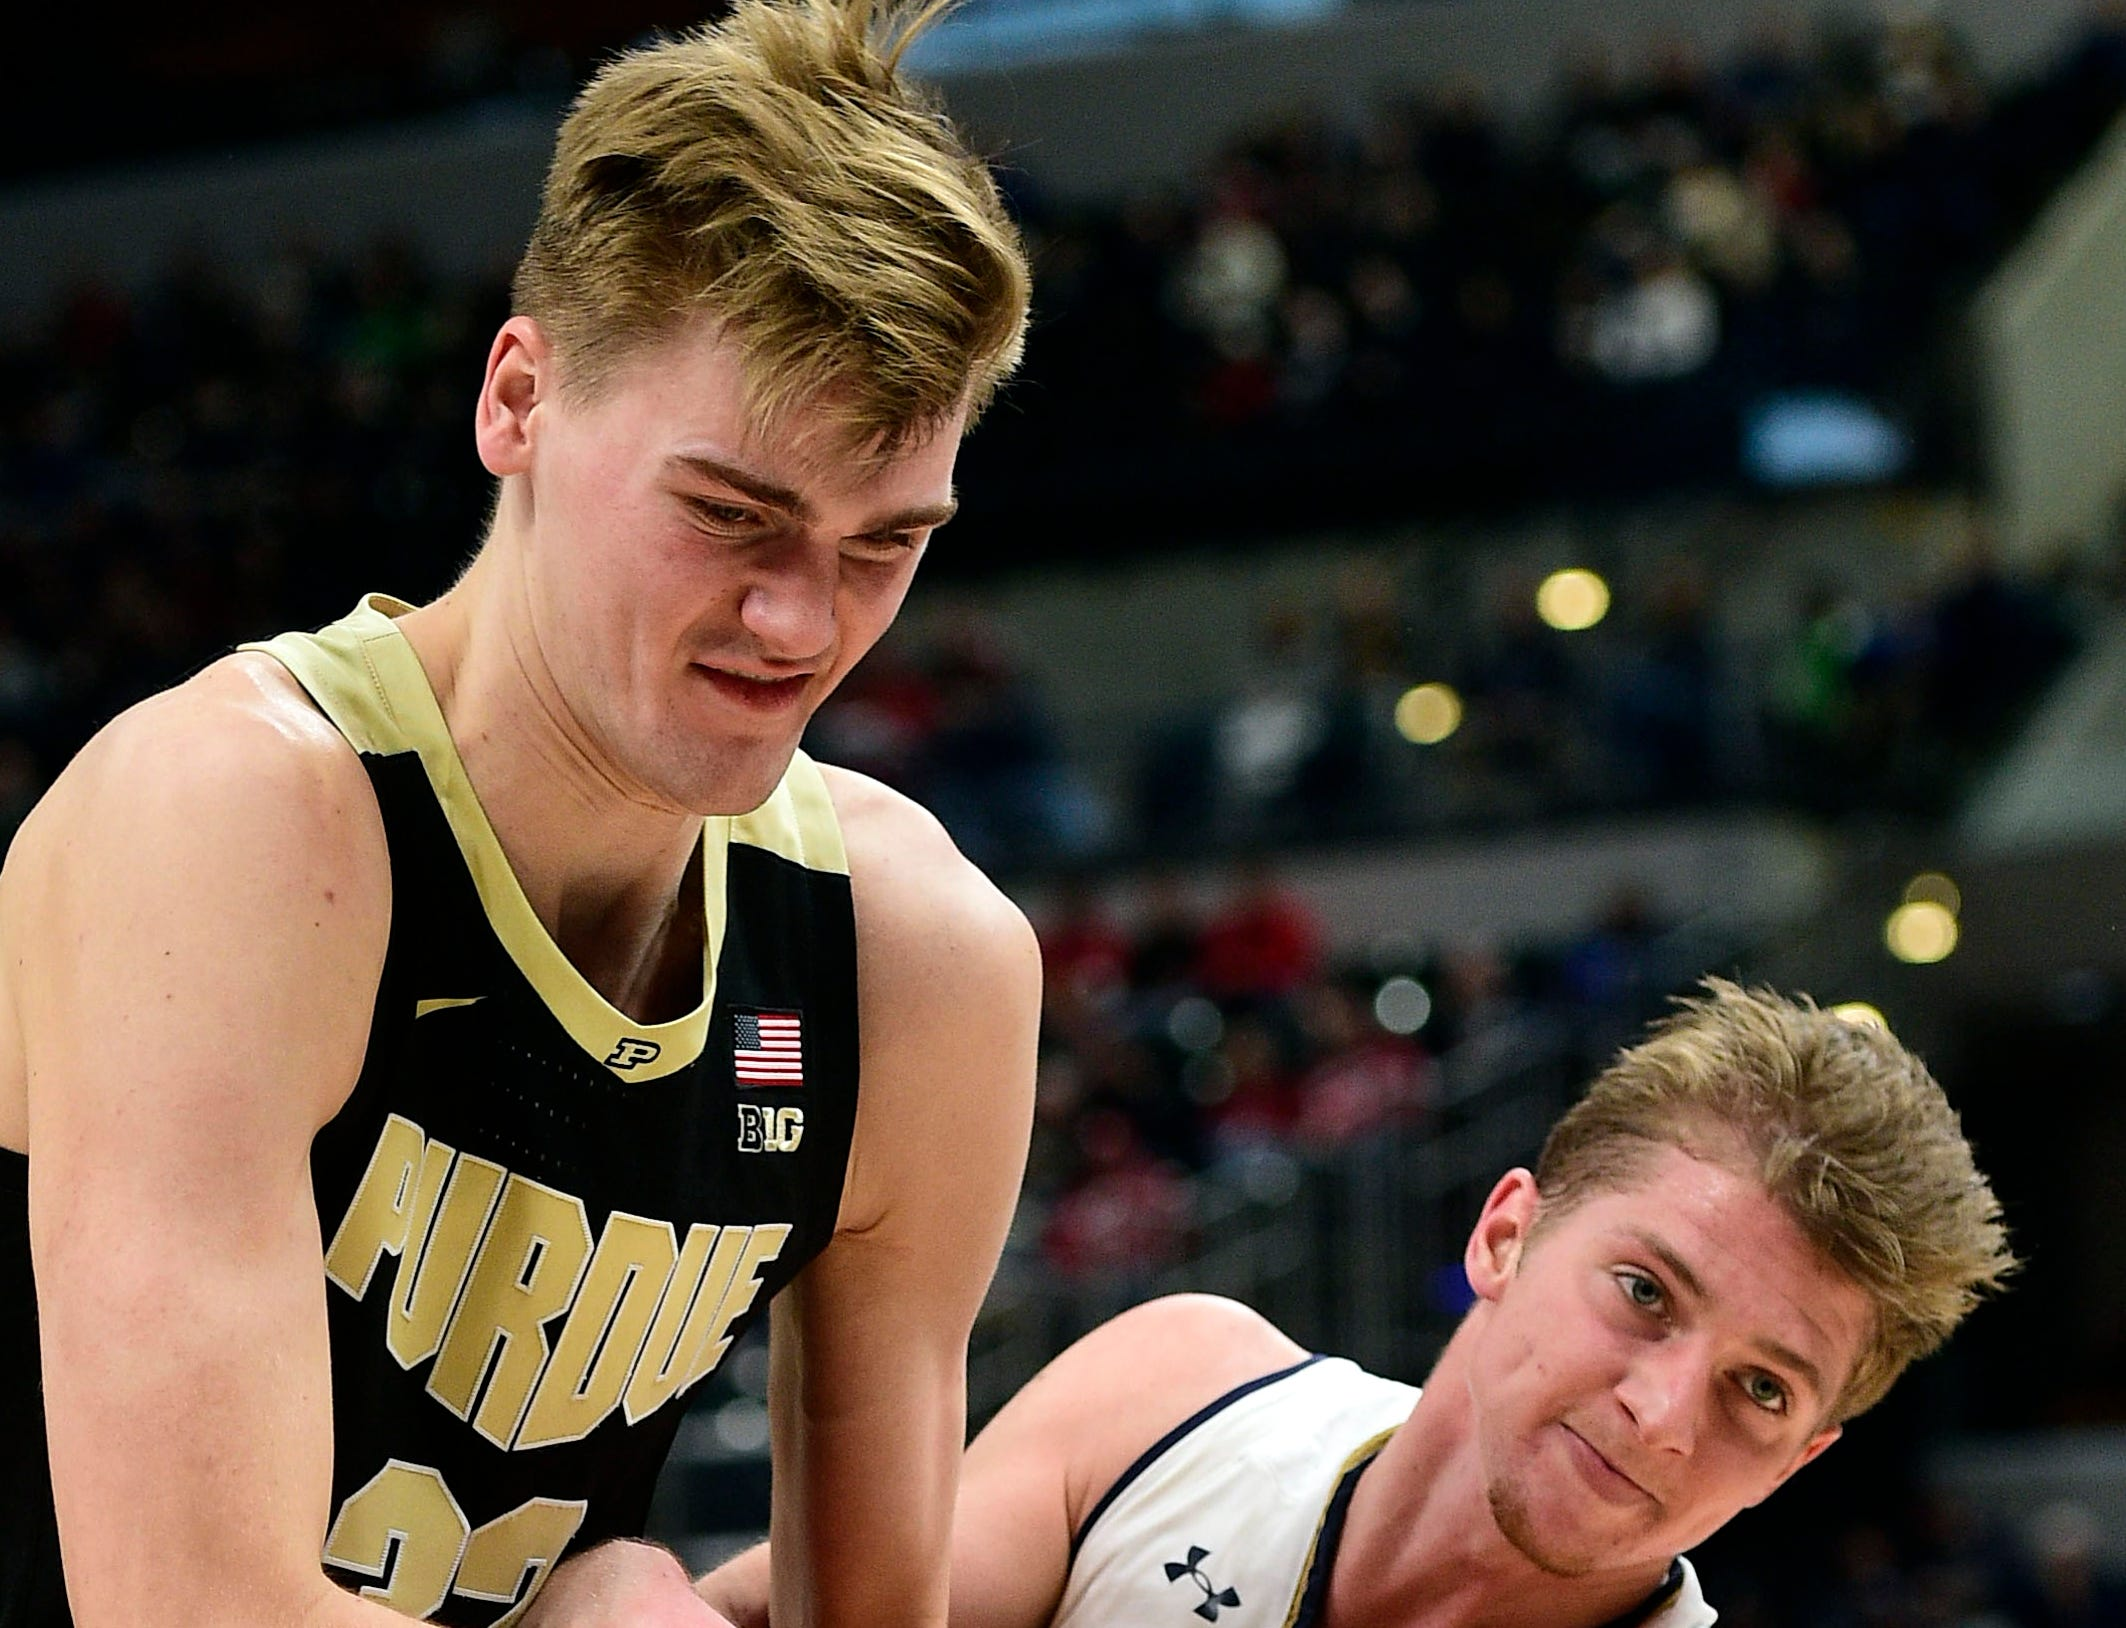 Dec 15, 2018; Indianapolis, IN, USA; Purdue Boilermaker center Matt Haarms (32) and Notre Dame Fighting Irish guard Rex Pflueger (0) battle for a loose ball in the first half at Bankers Life Fieldhouse. Mandatory Credit: Thomas J. Russo-USA TODAY Sports